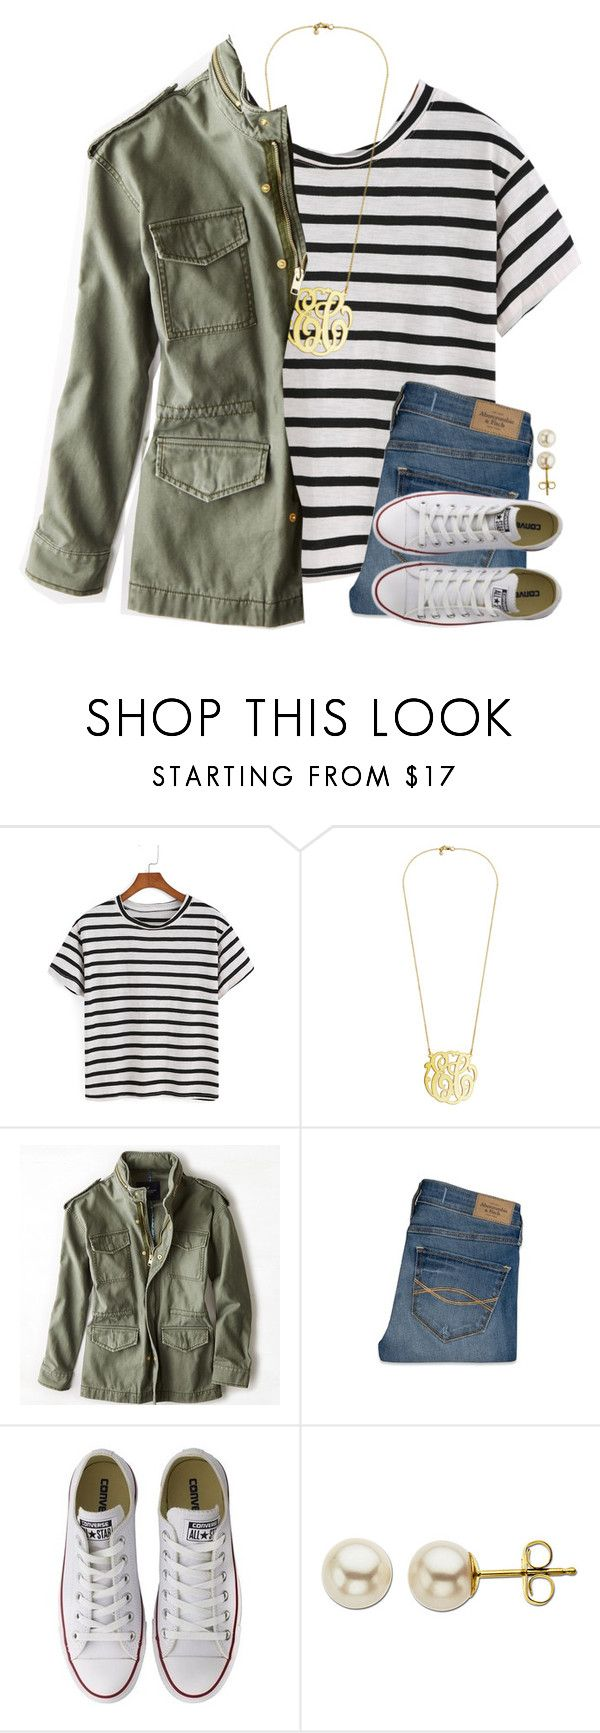 """""""Go follow @smileyavenuegirl and get her to 750!"""" by meljordrum ❤ liked on Polyvore featuring American Eagle Outfitters, Abercrombie & Fitch, Converse and Lord & Taylor"""